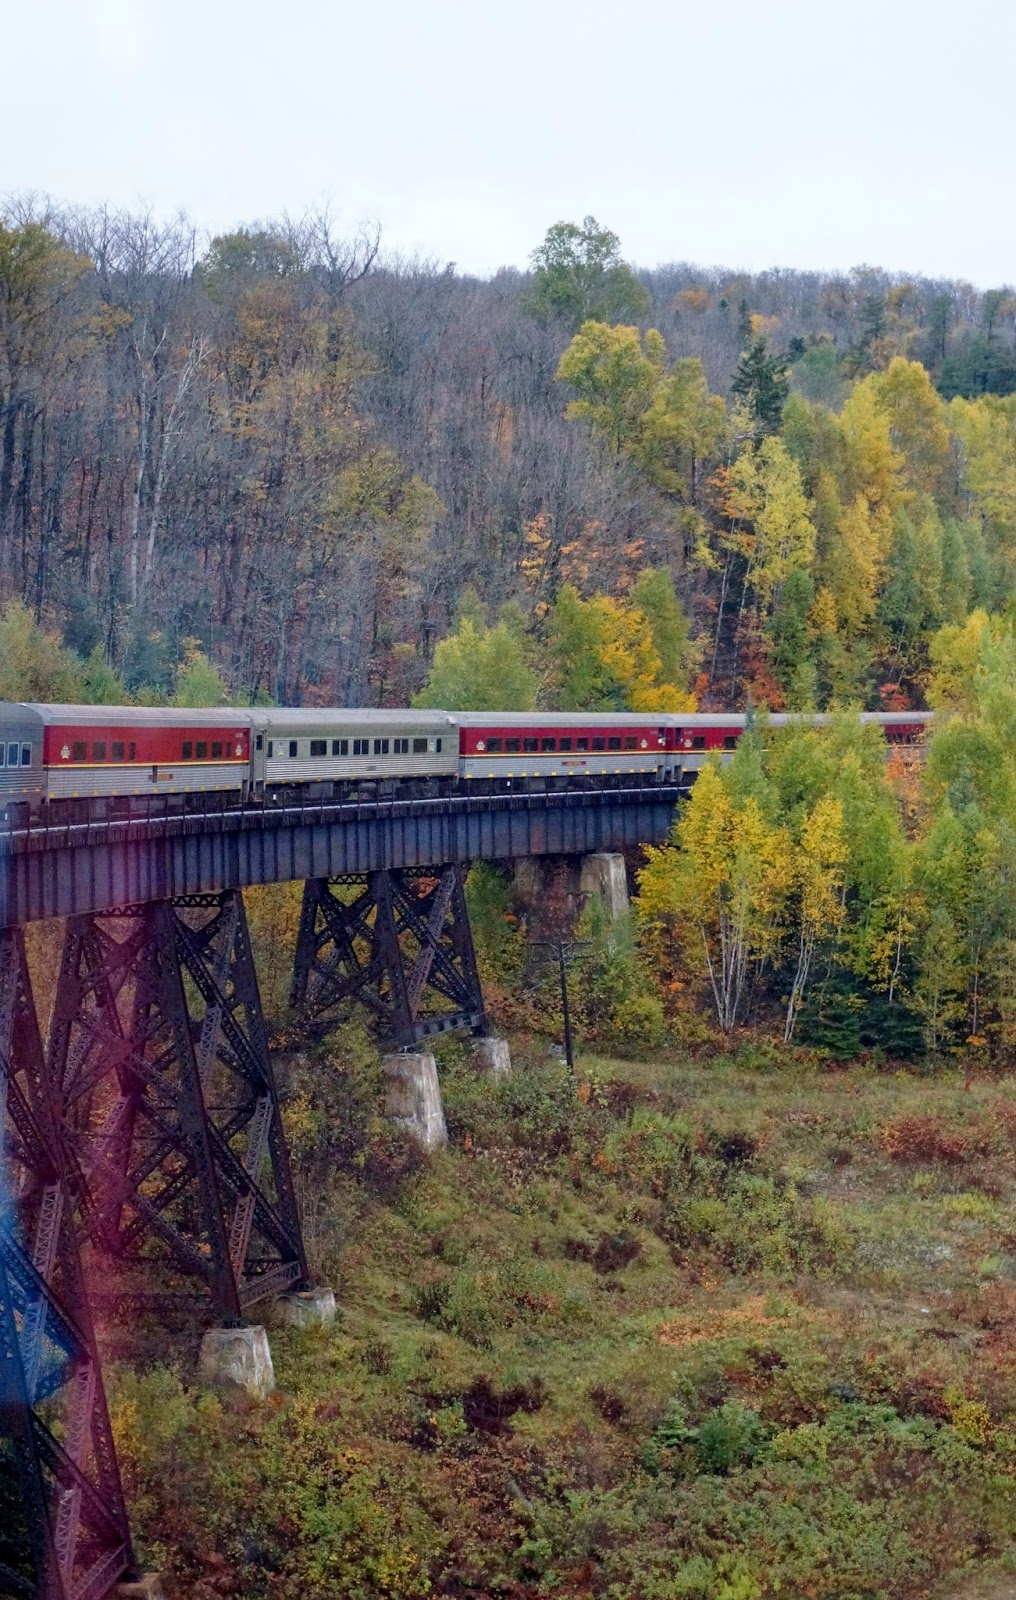 Bev S Travel Blogs Agawa Canyon Train Tour